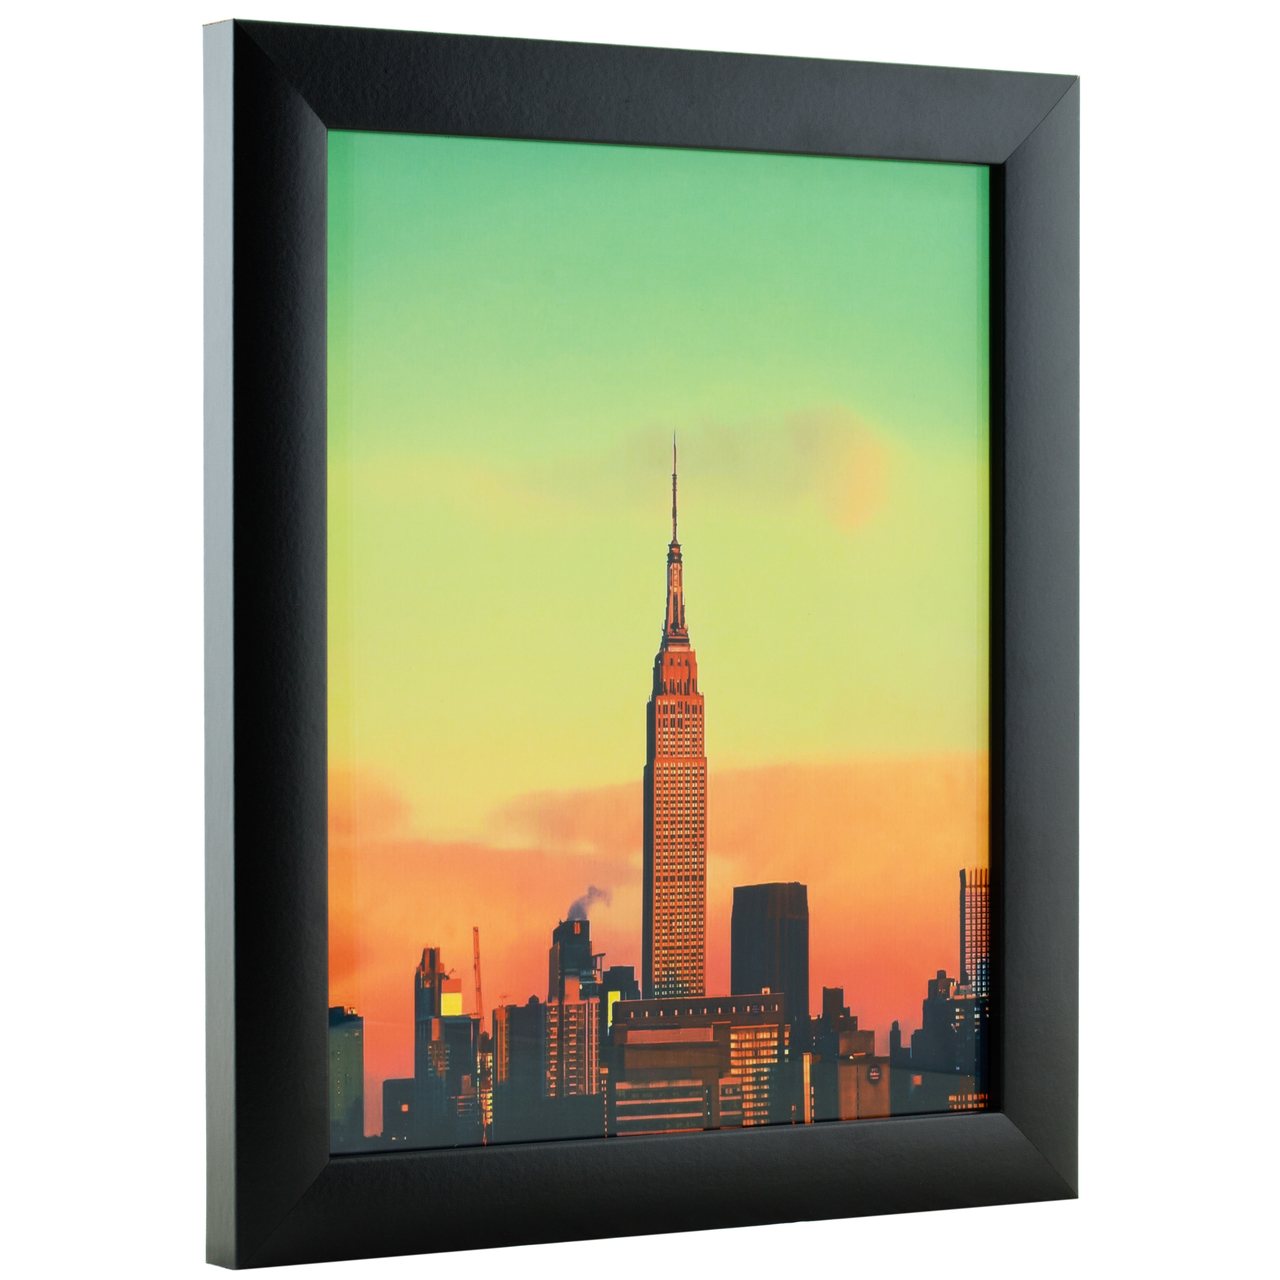 14 x 20 Inch Craig Frames Contemporary Picture Frame Black